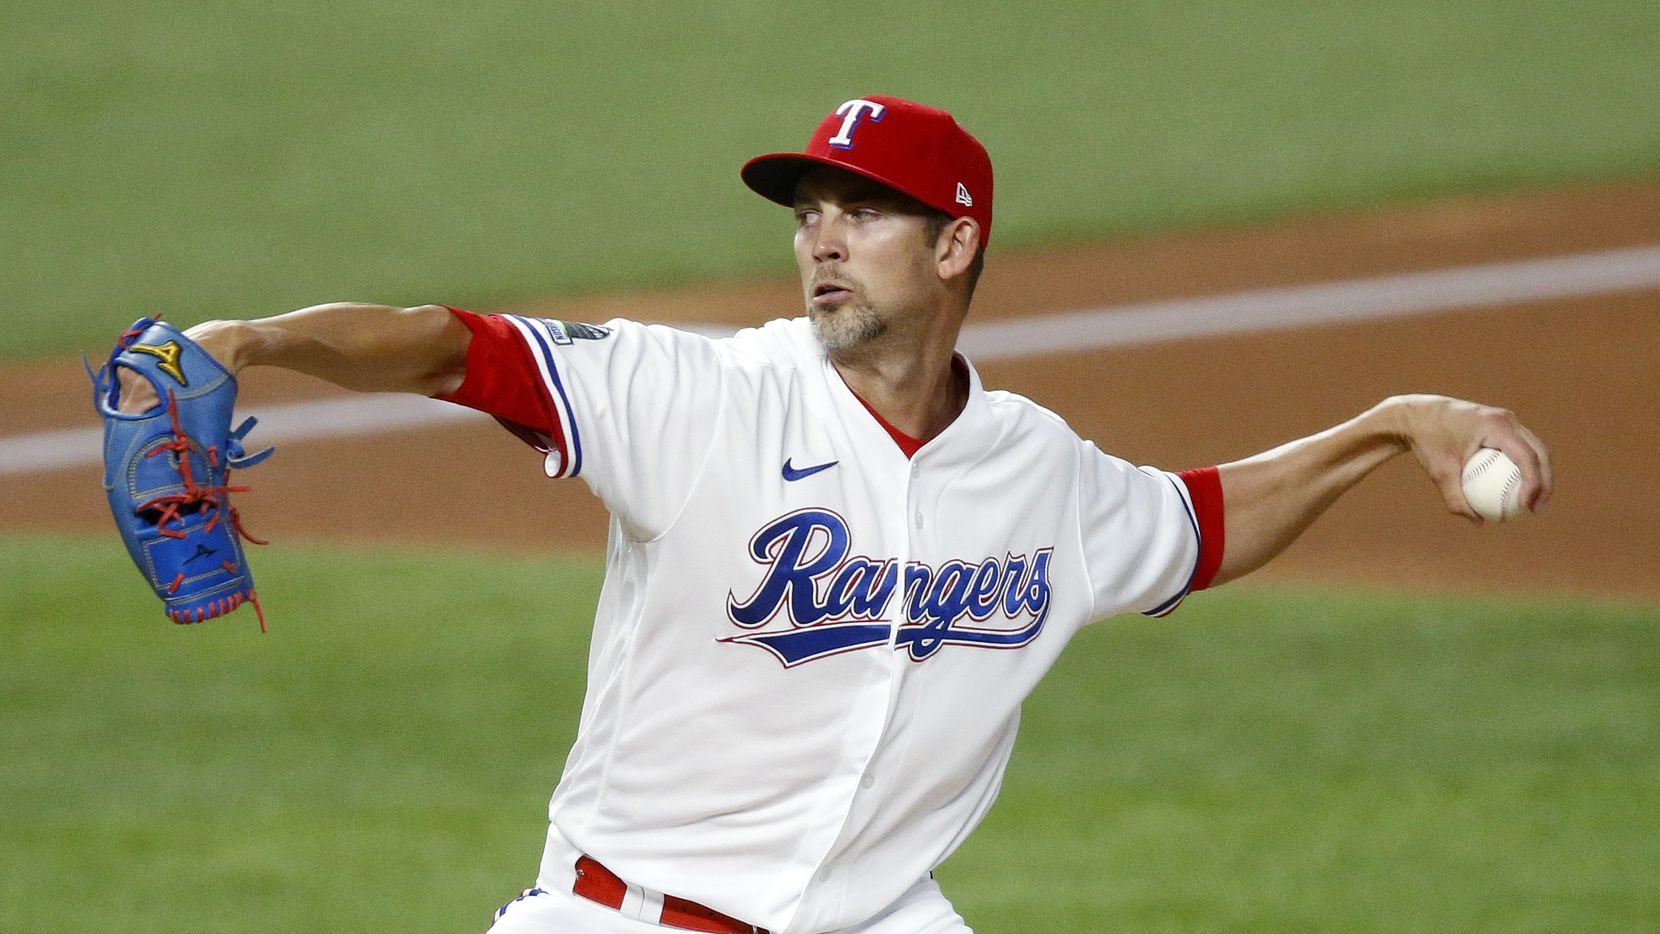 Texas Rangers starting pitcher Mike Minor (23) throws in the first inning against the Seattle Mariners at Globe Life Field in Arlington, Tuesday, August 11, 2020.